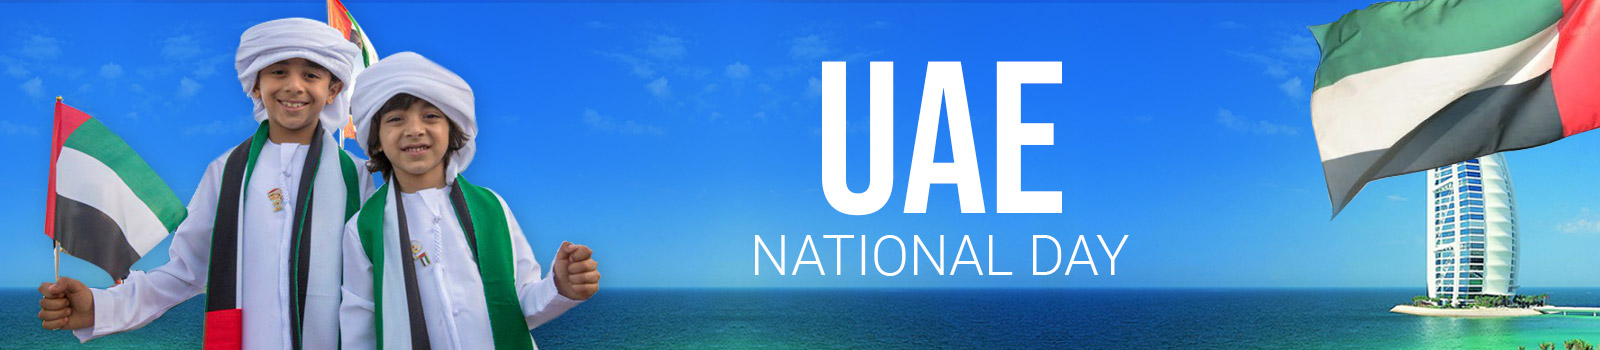 About UAE National Day